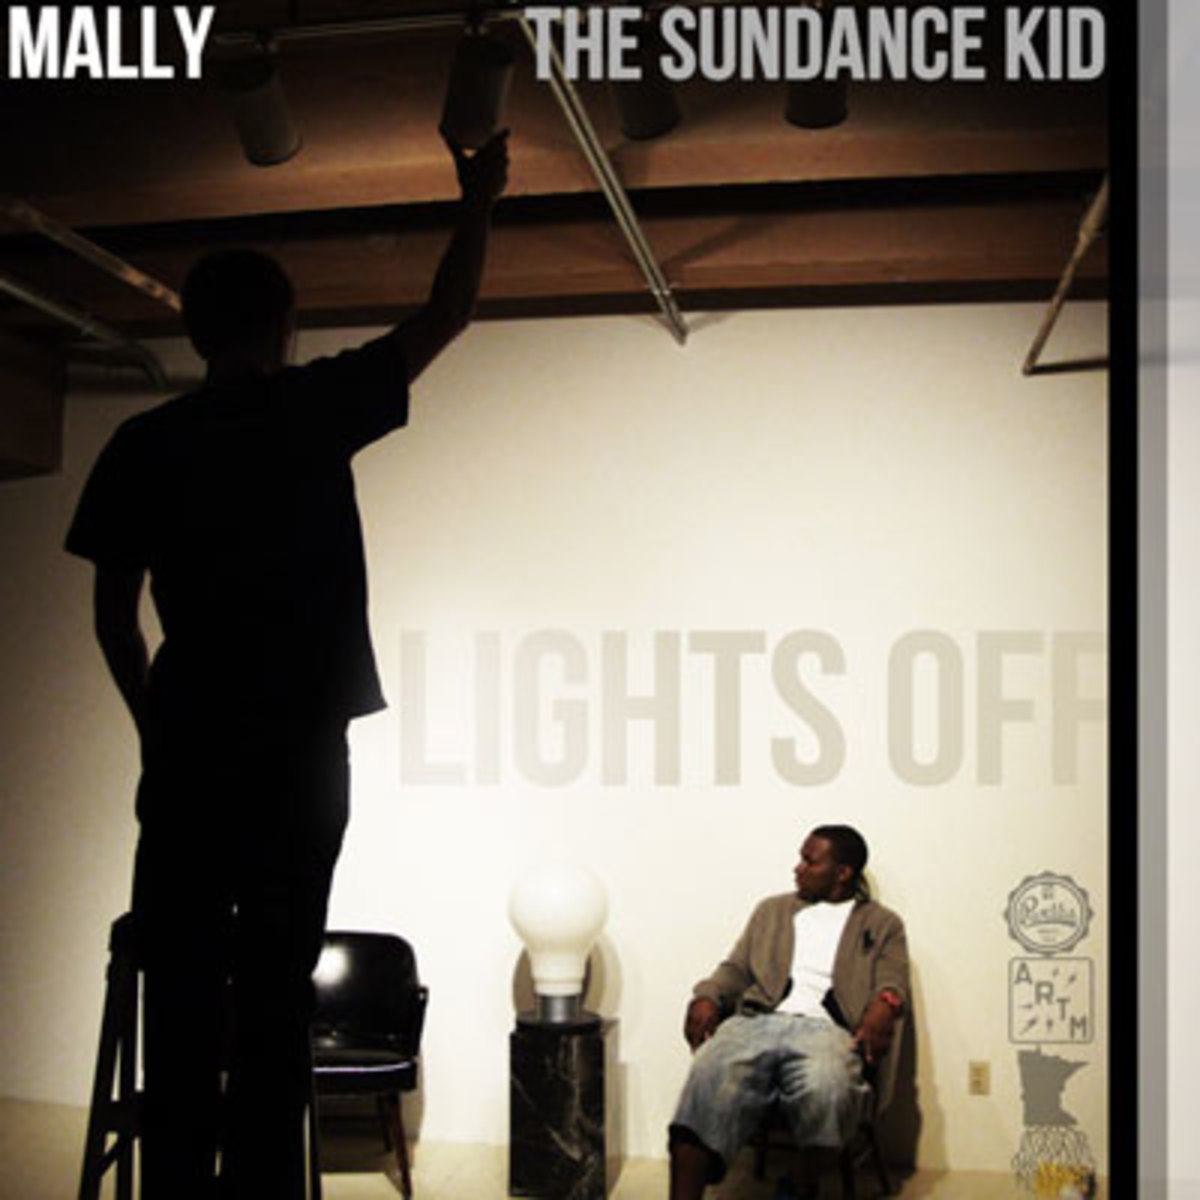 mally-lightsoff.jpg